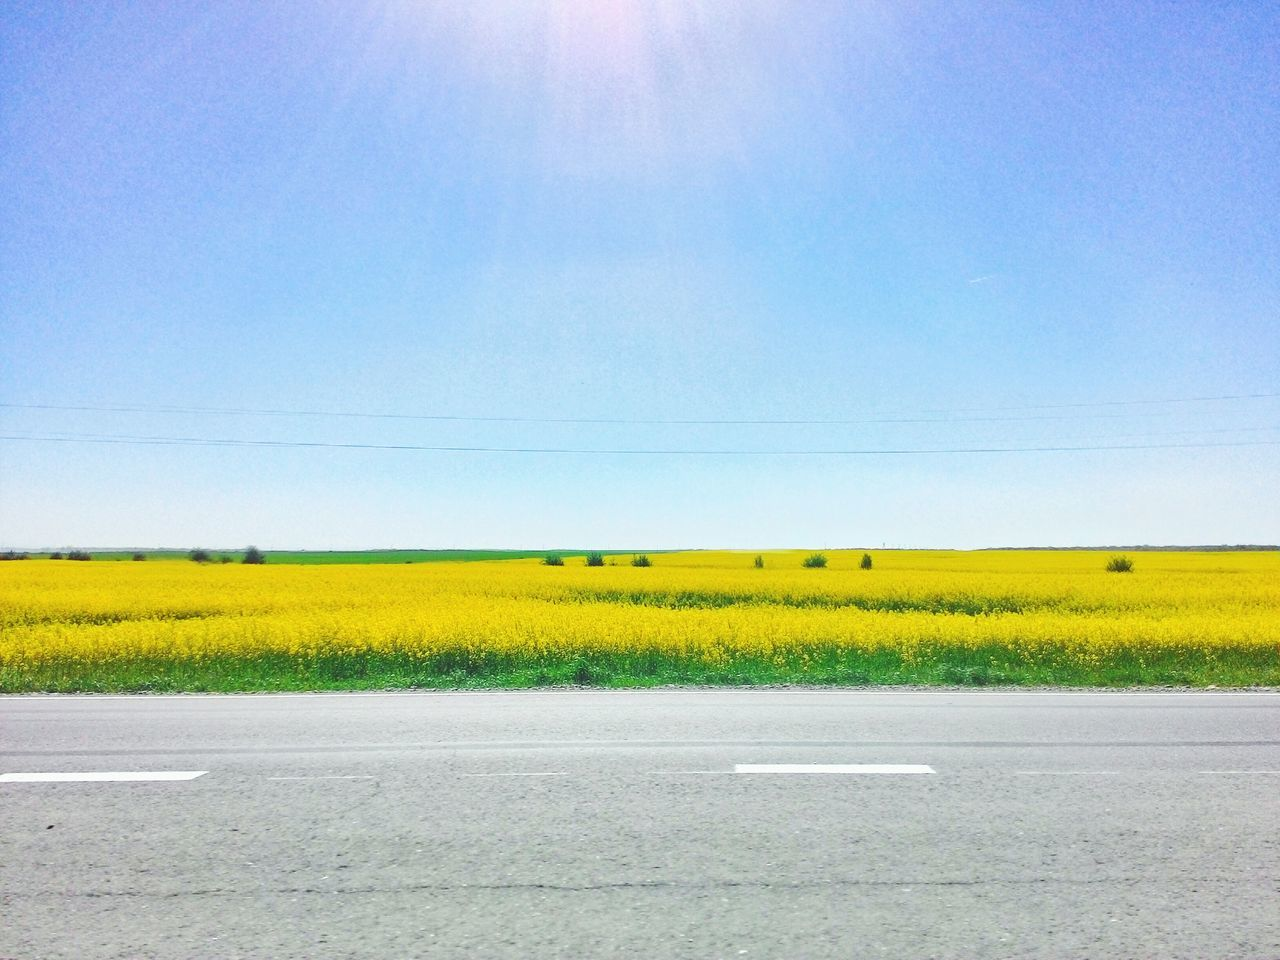 Yellow Flower Nature Blue Day Landscape Outdoors Sky Agriculture Freshness No People Crop  Field